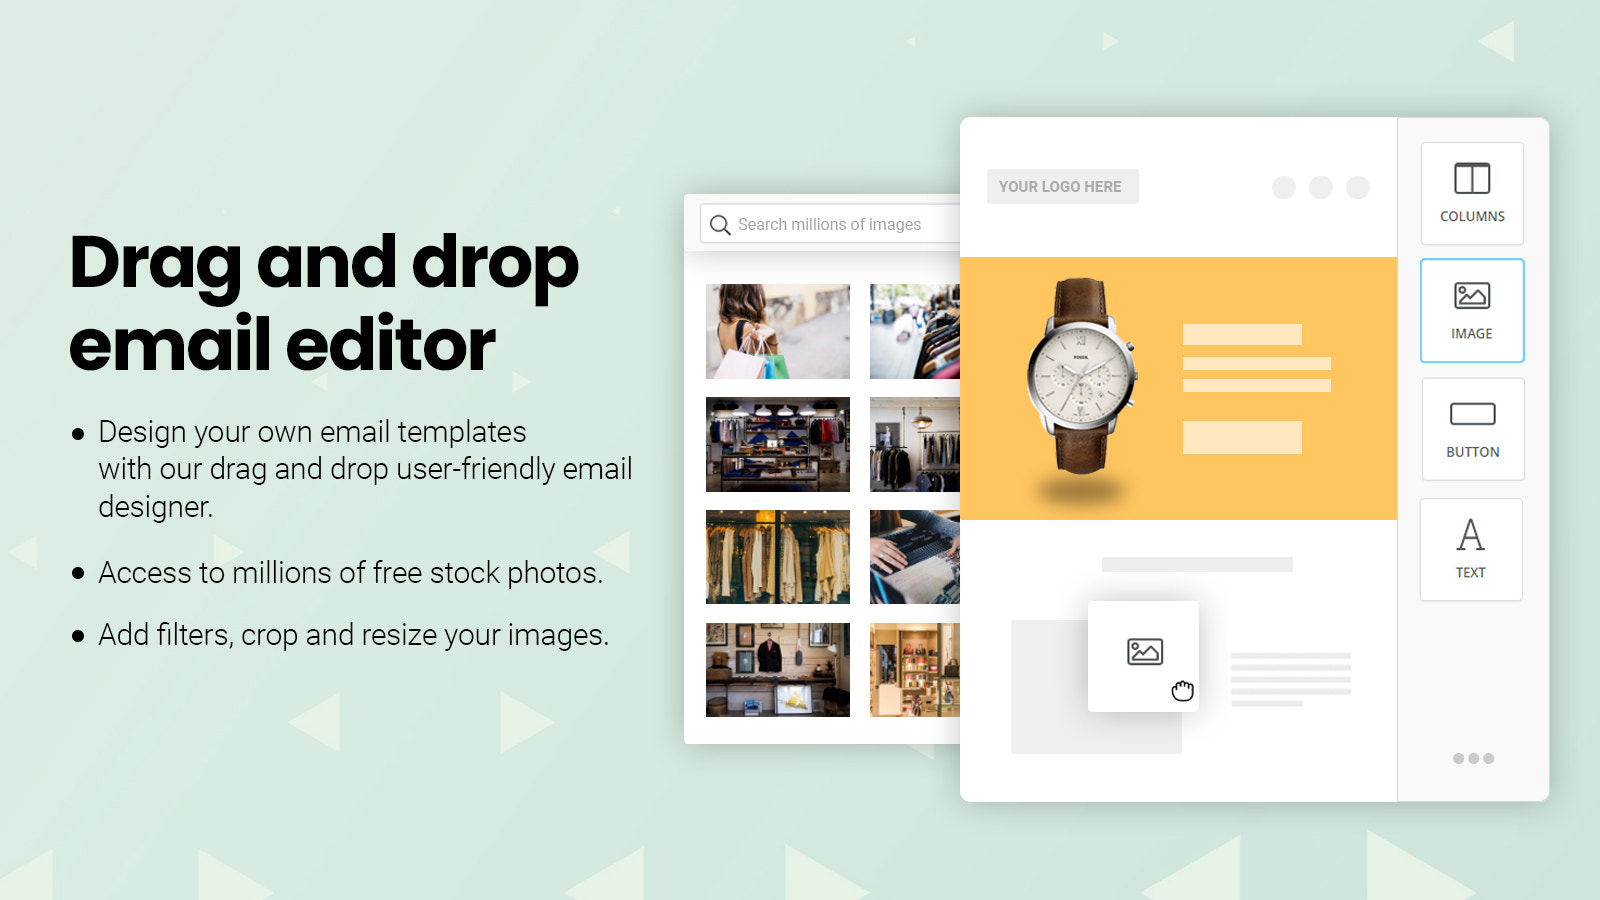 Drag and drop email templates with millions of stock photos